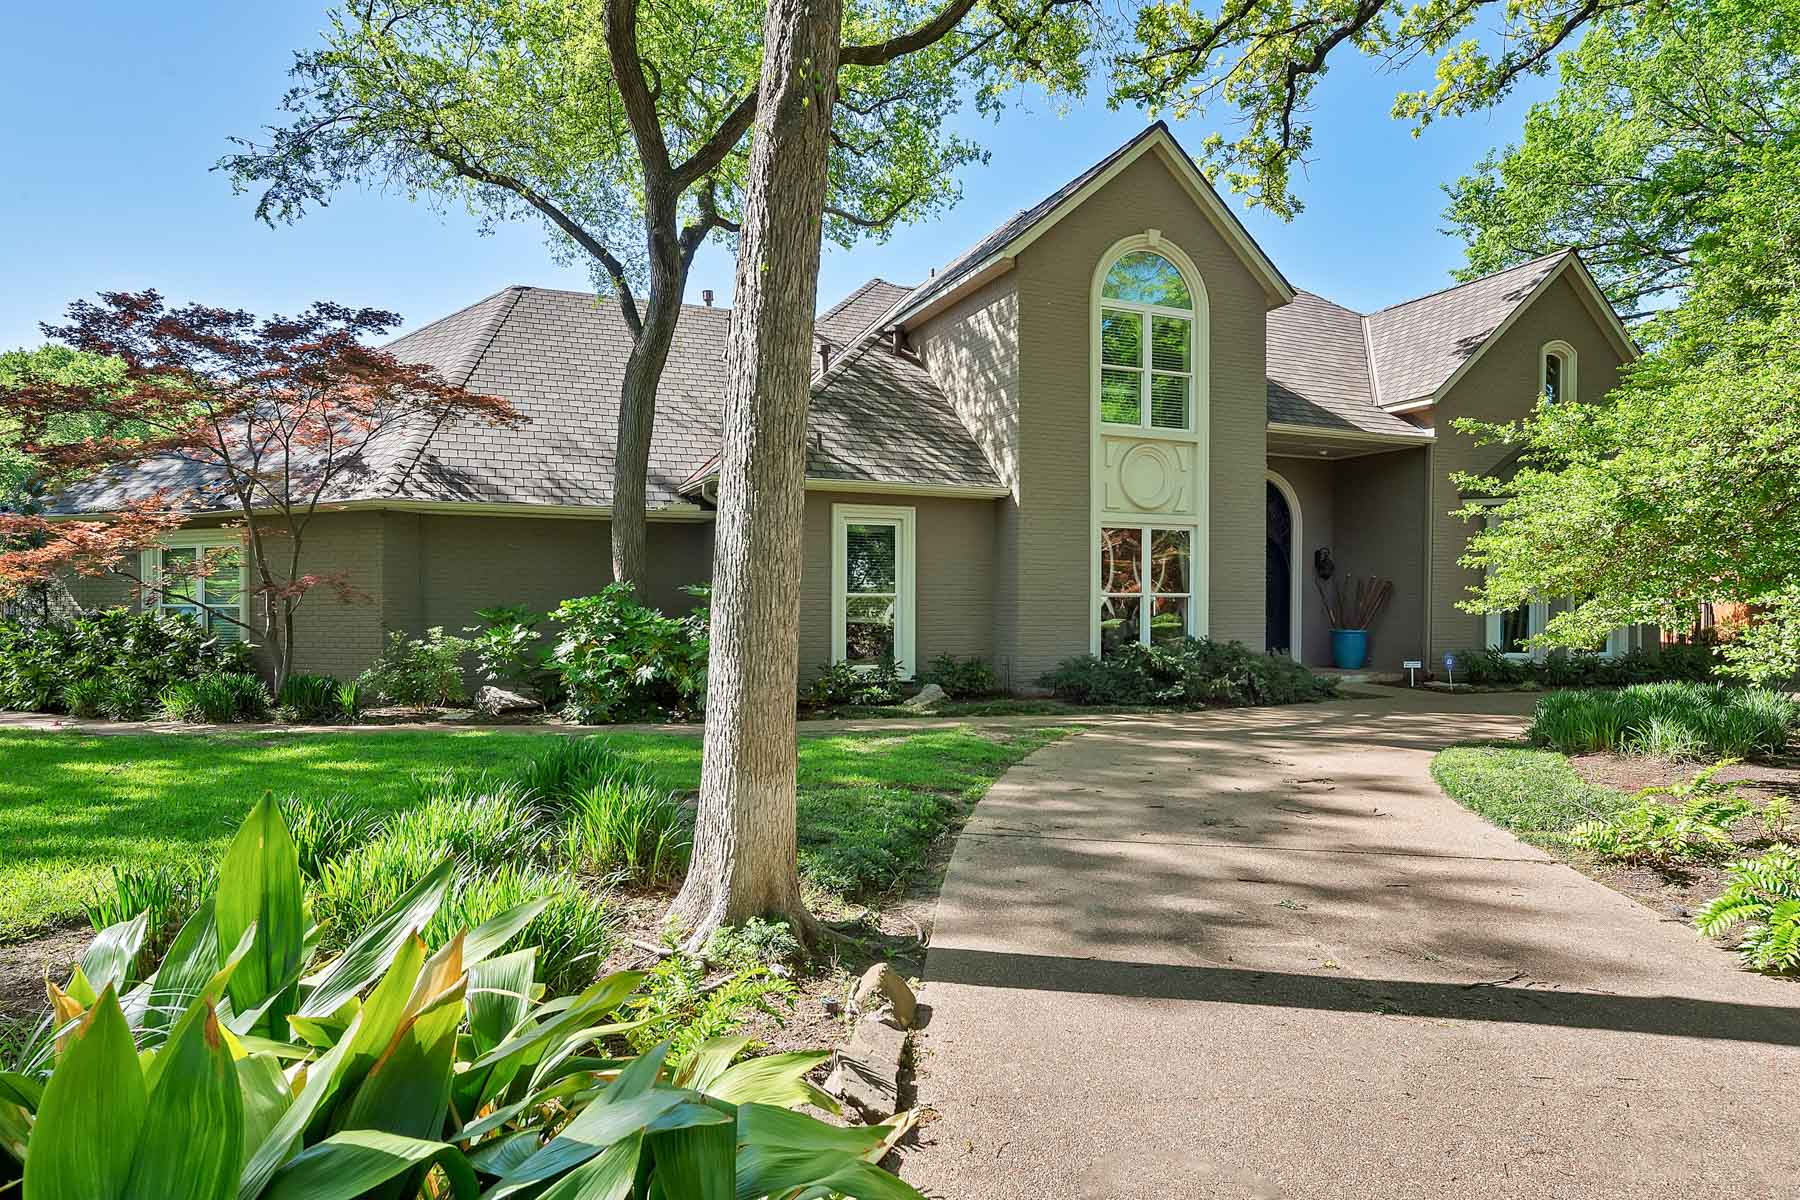 Maison unifamiliale pour l Vente à 4851 Moss Hollow Court, Fort Worth 4851 Moss Hollow Ct Fort Worth, Texas, 76109 États-Unis